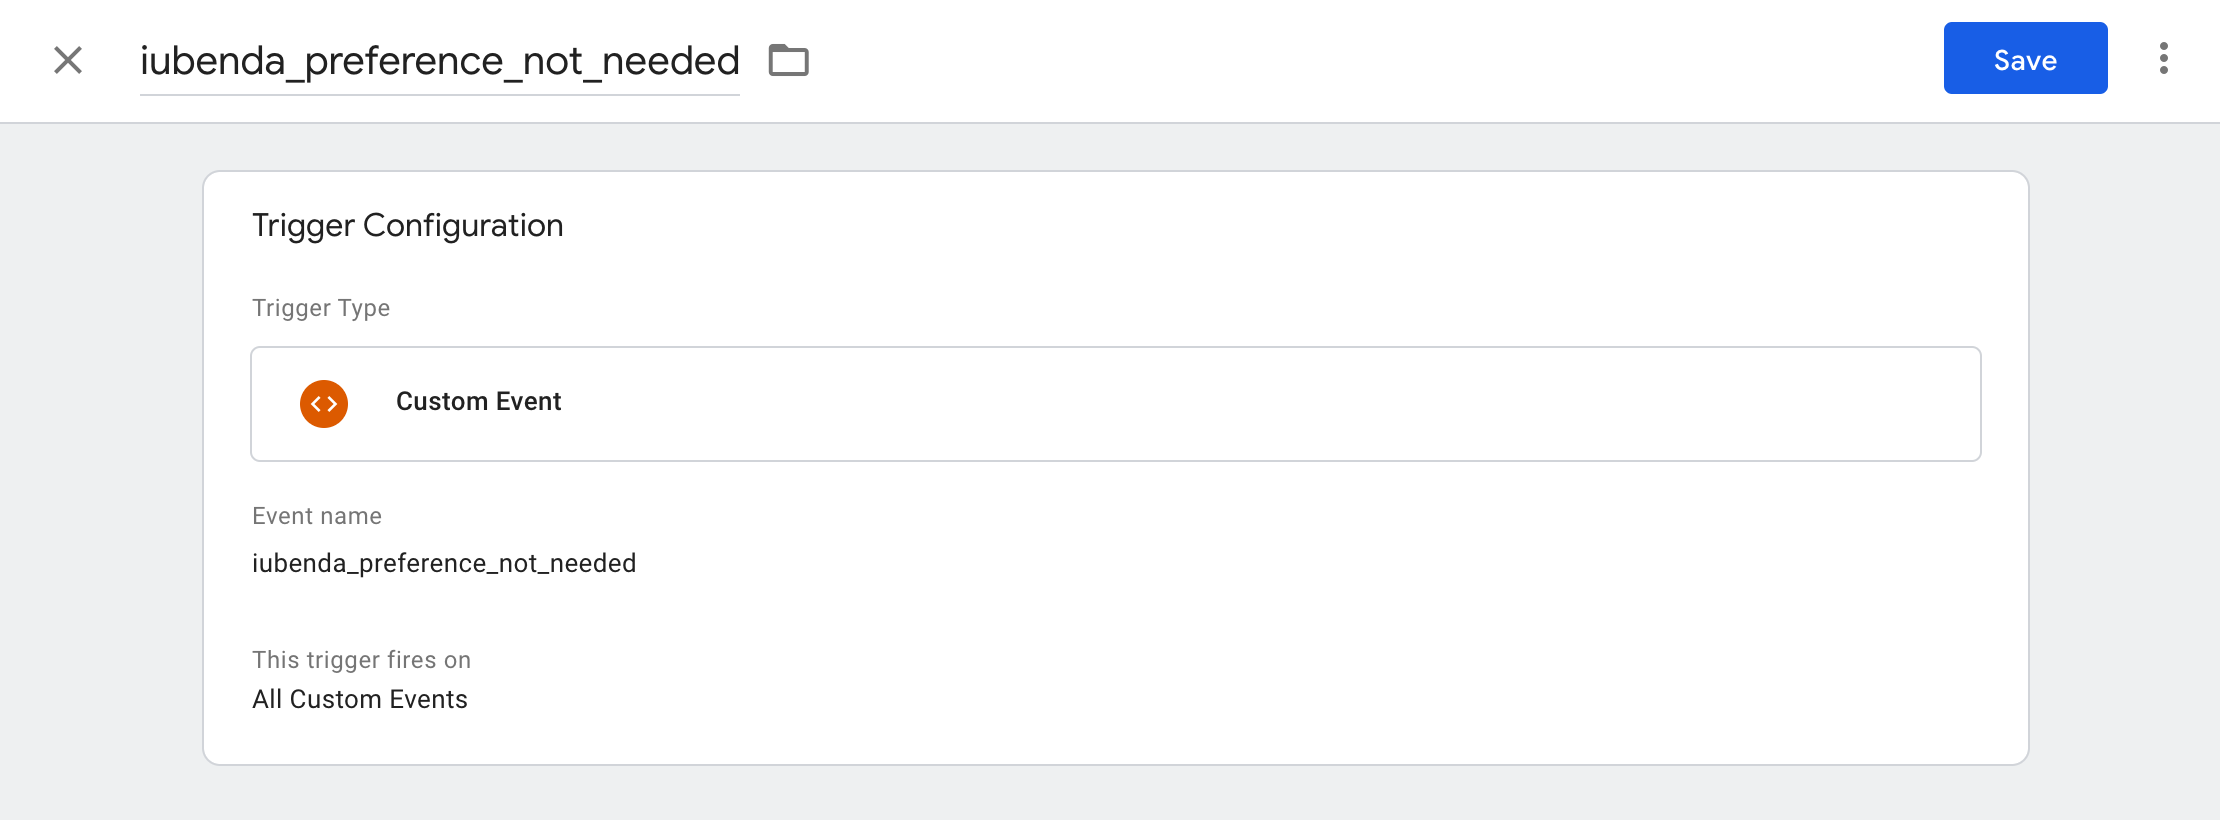 Google Tag Manager - iubenda_preference_not_needed trigger configuration